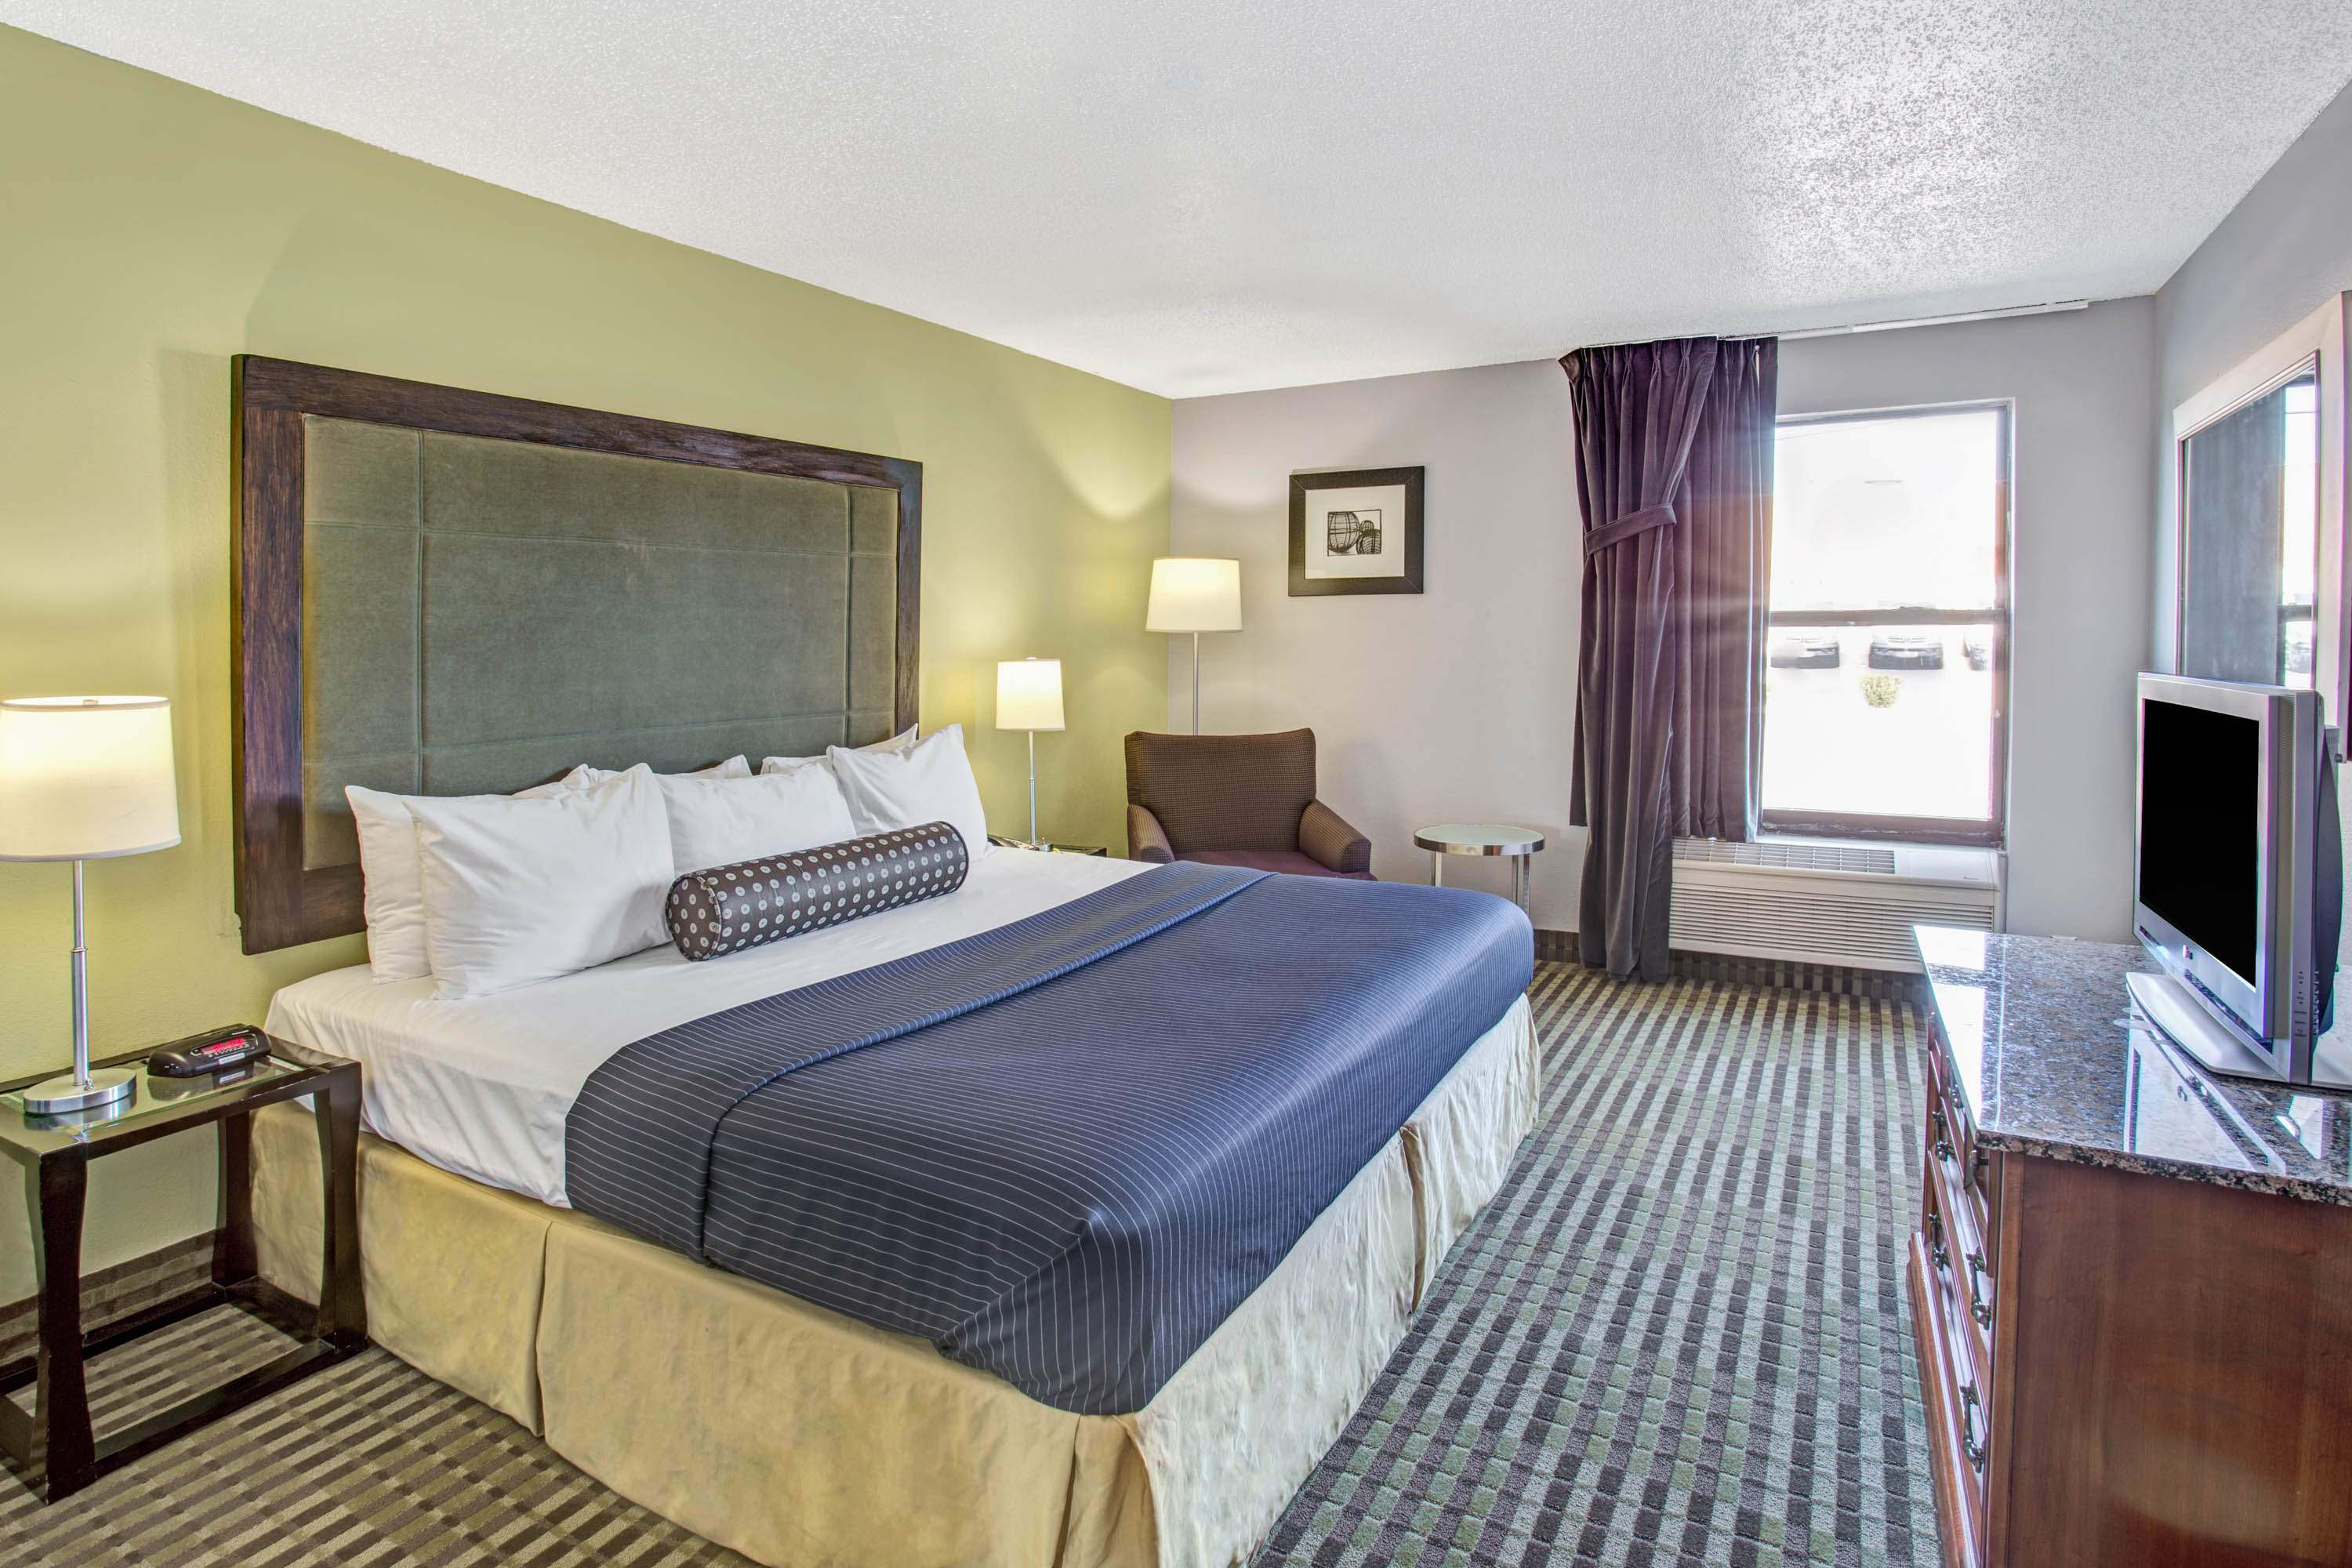 Hotels In Gurnee Il With Jacuzzi In Room